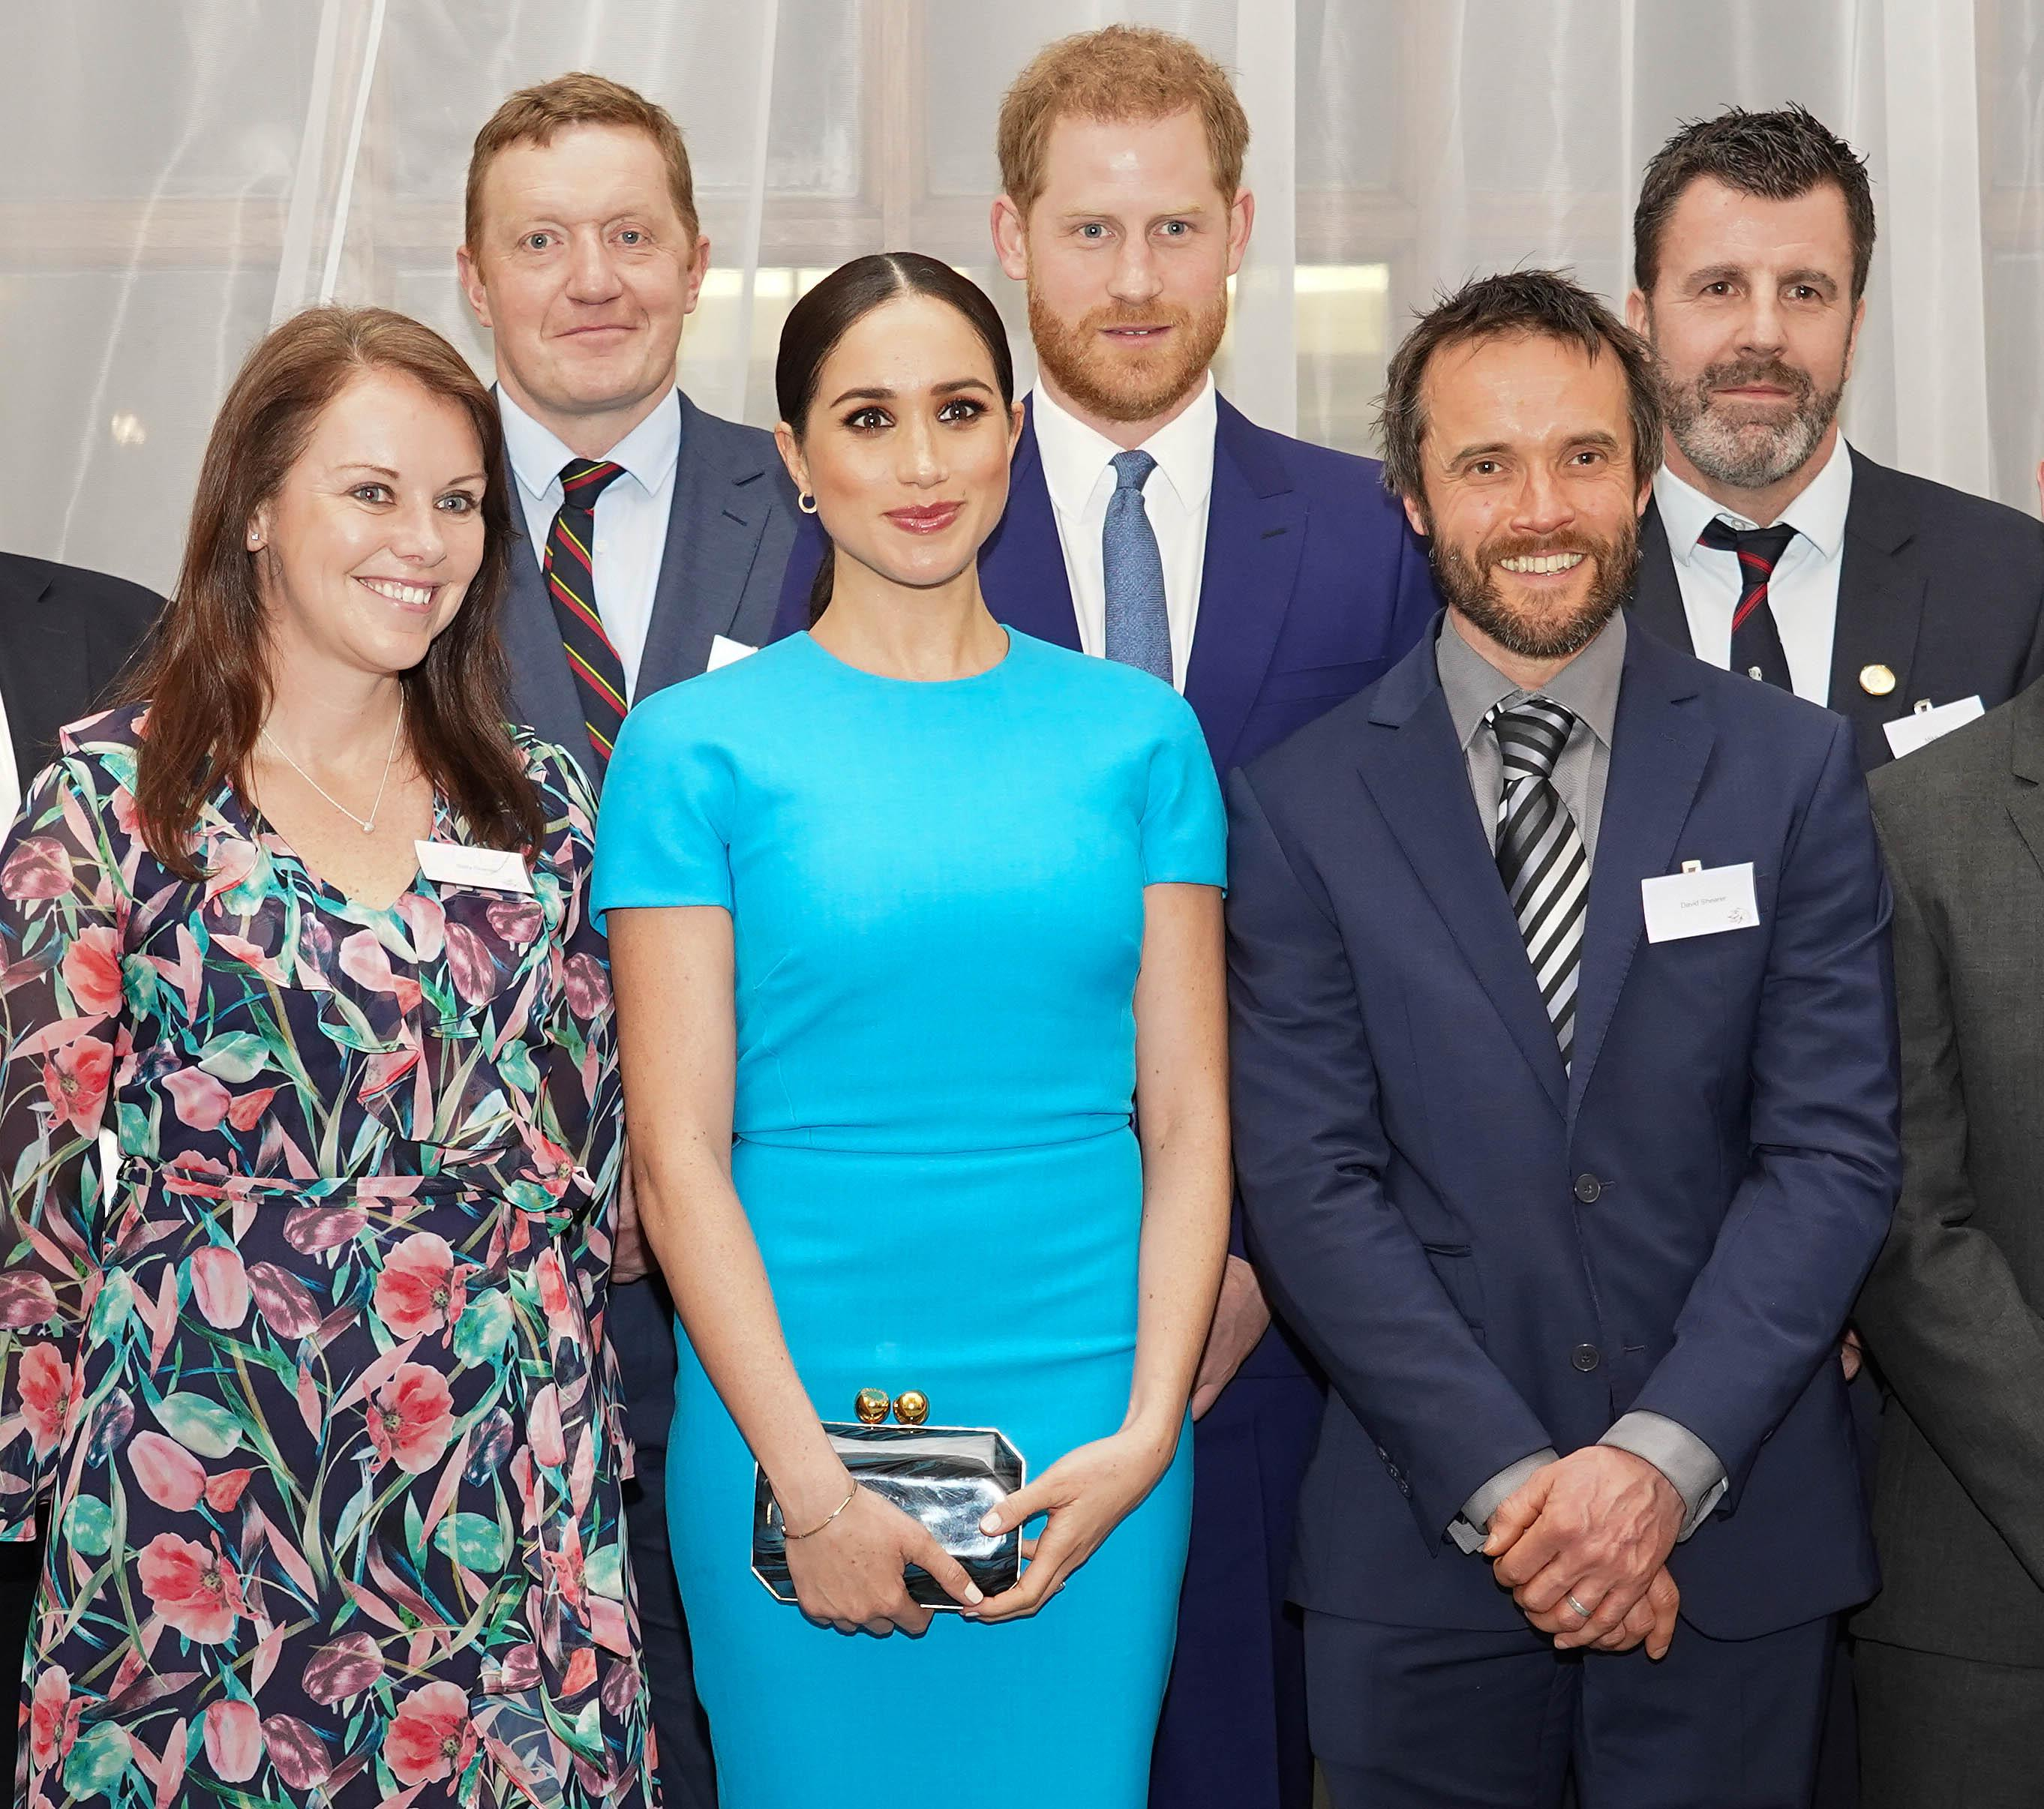 The Duke and Duchess of Sussex pose for a group picture at the Endeavour Fund Awards at Mansion House in London. (Press Association)